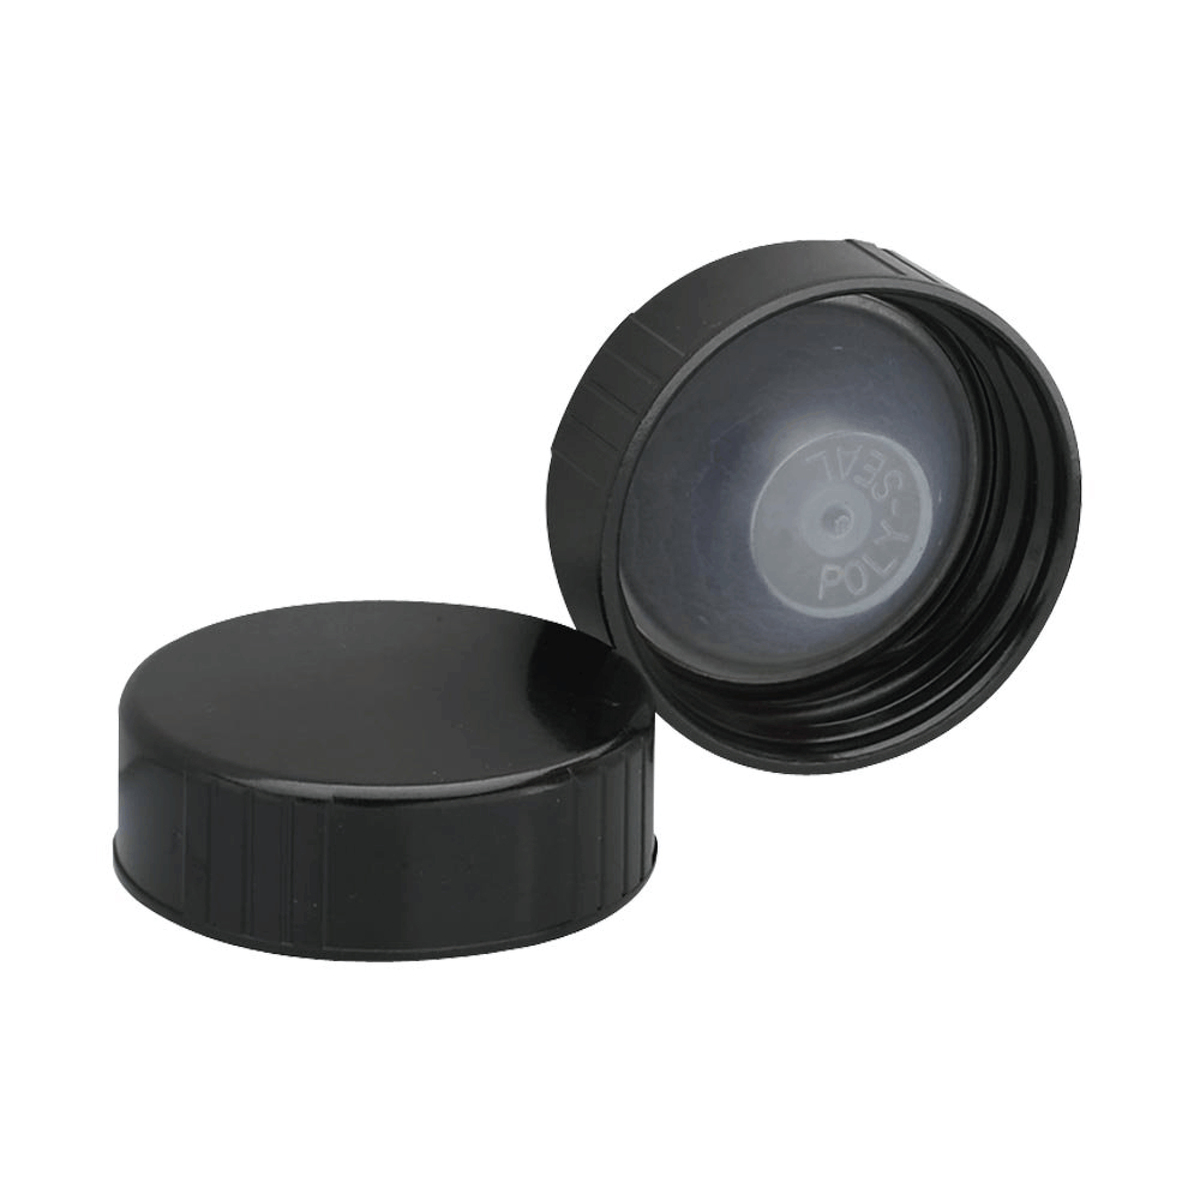 Black Plastic Polyseal Lid for Boston Rounds